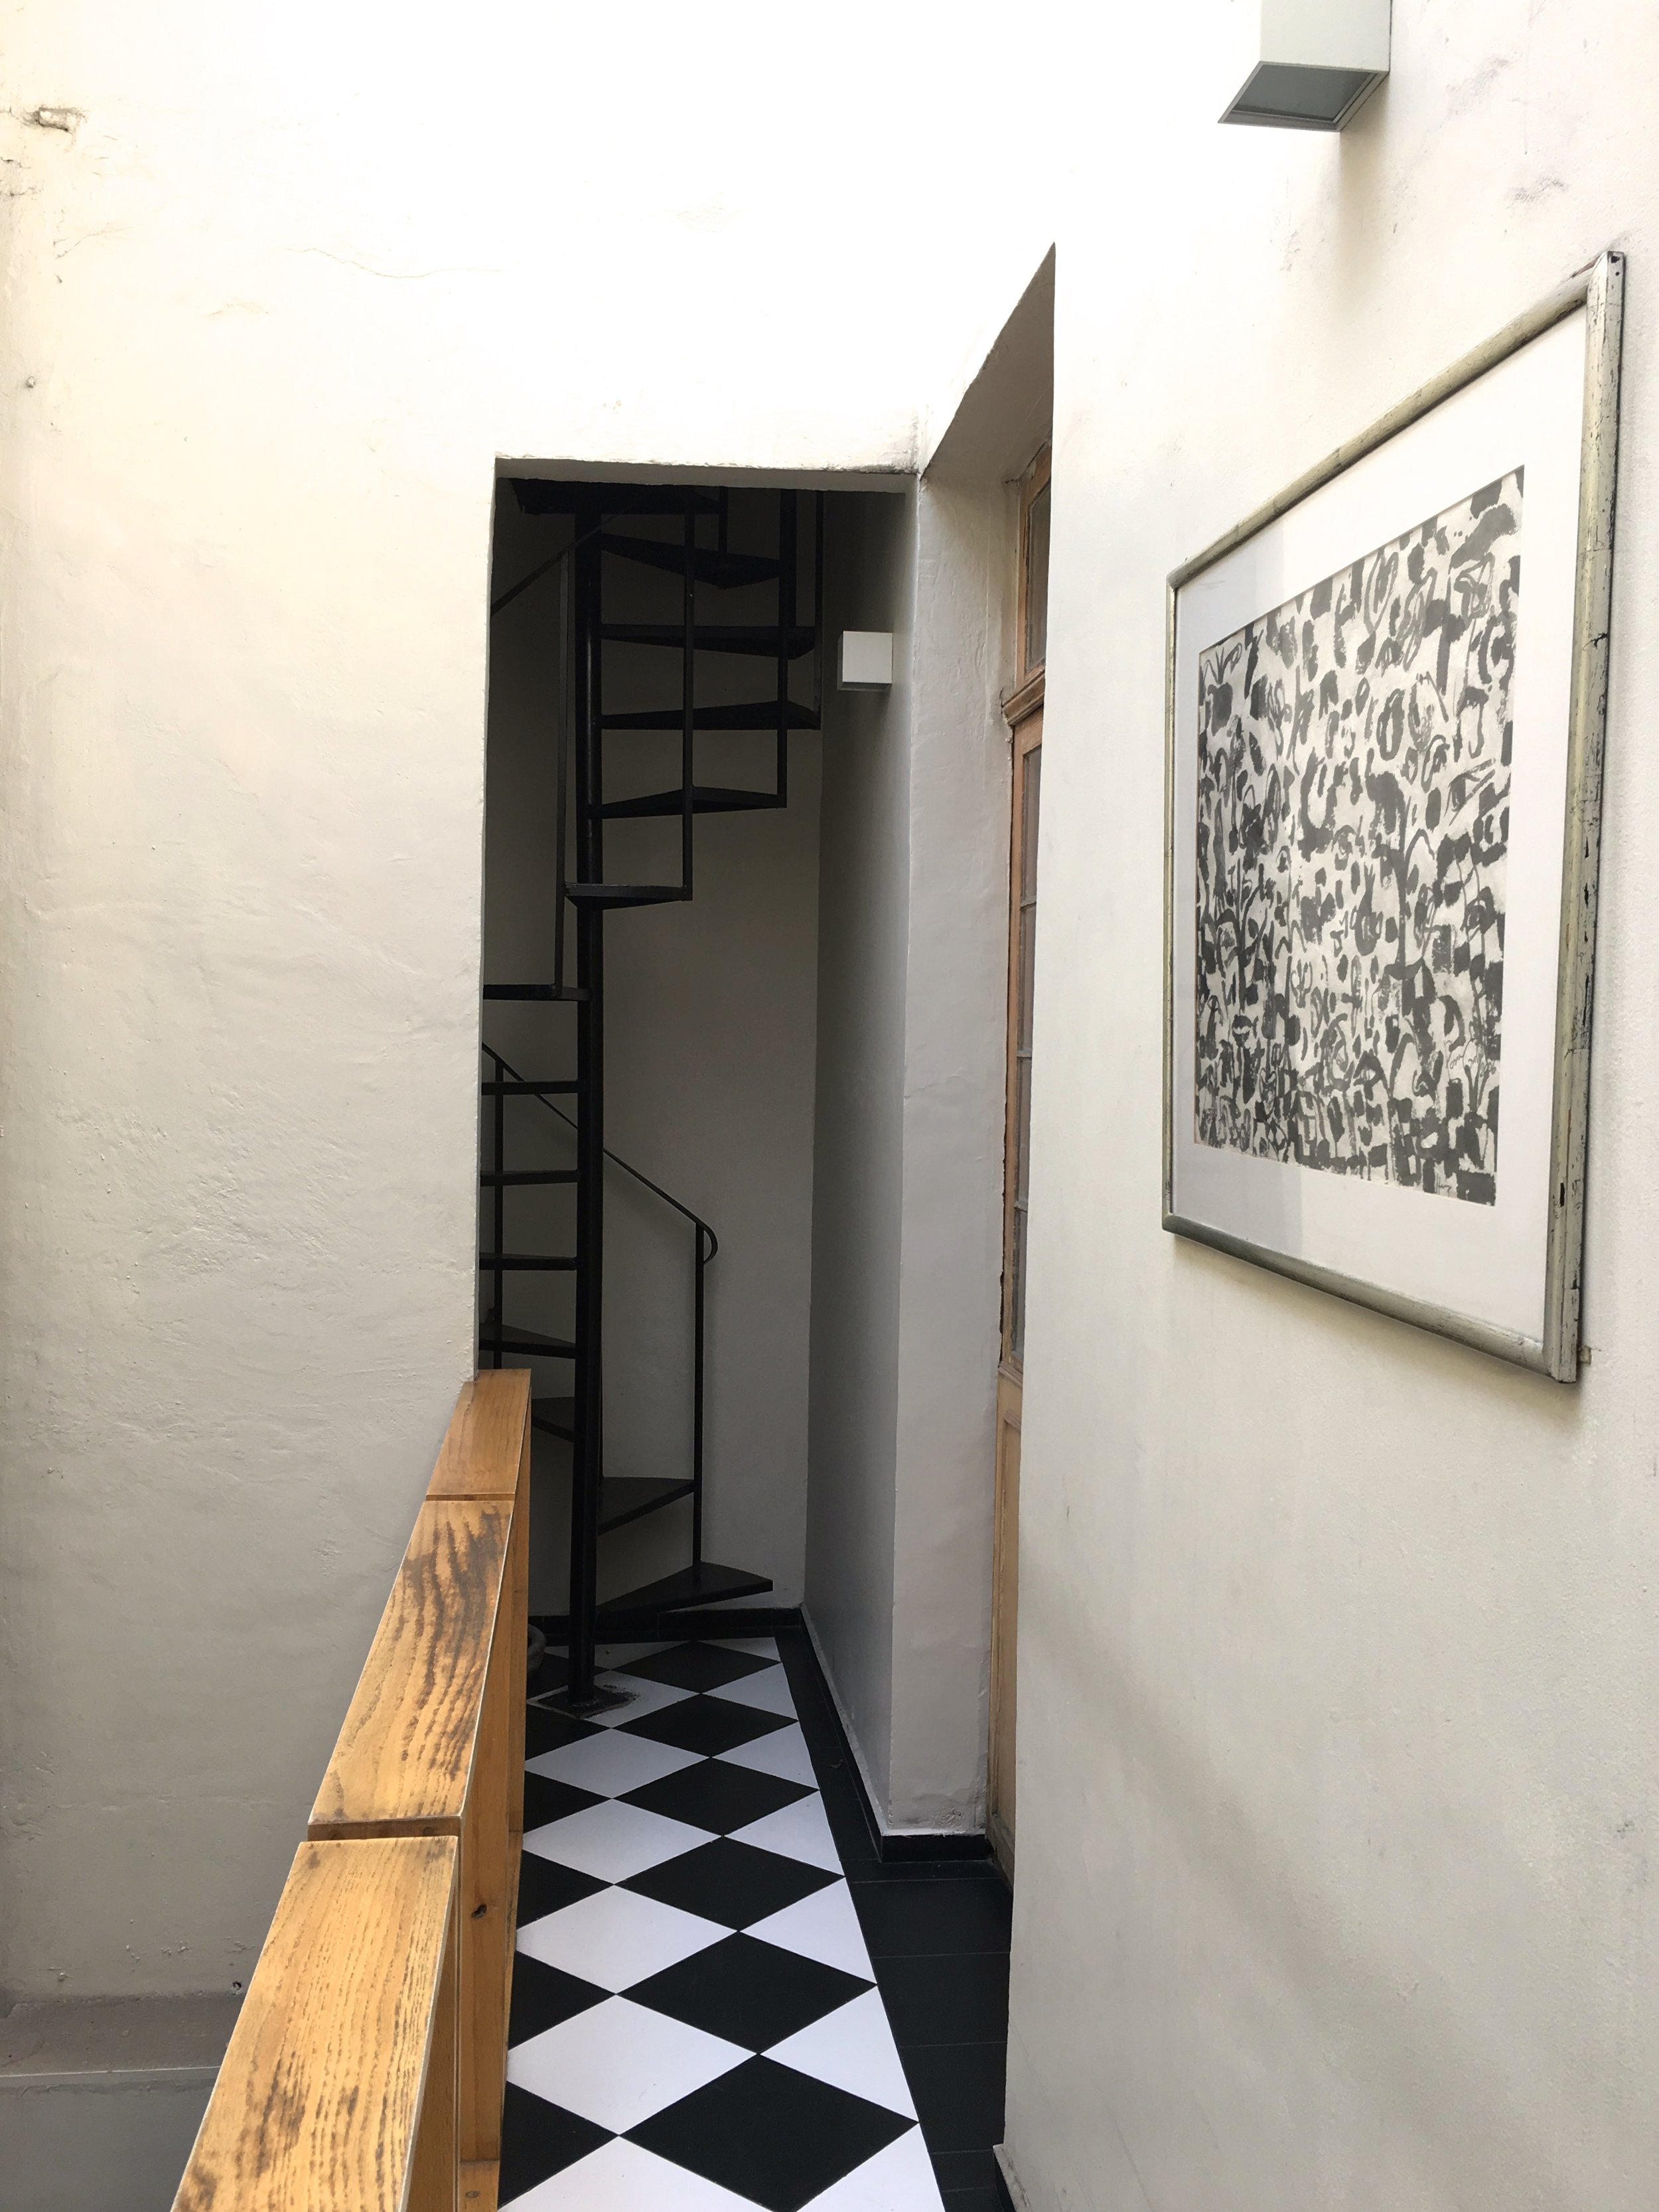 Black and white catwalk with a winding staircase leading to the balcony.